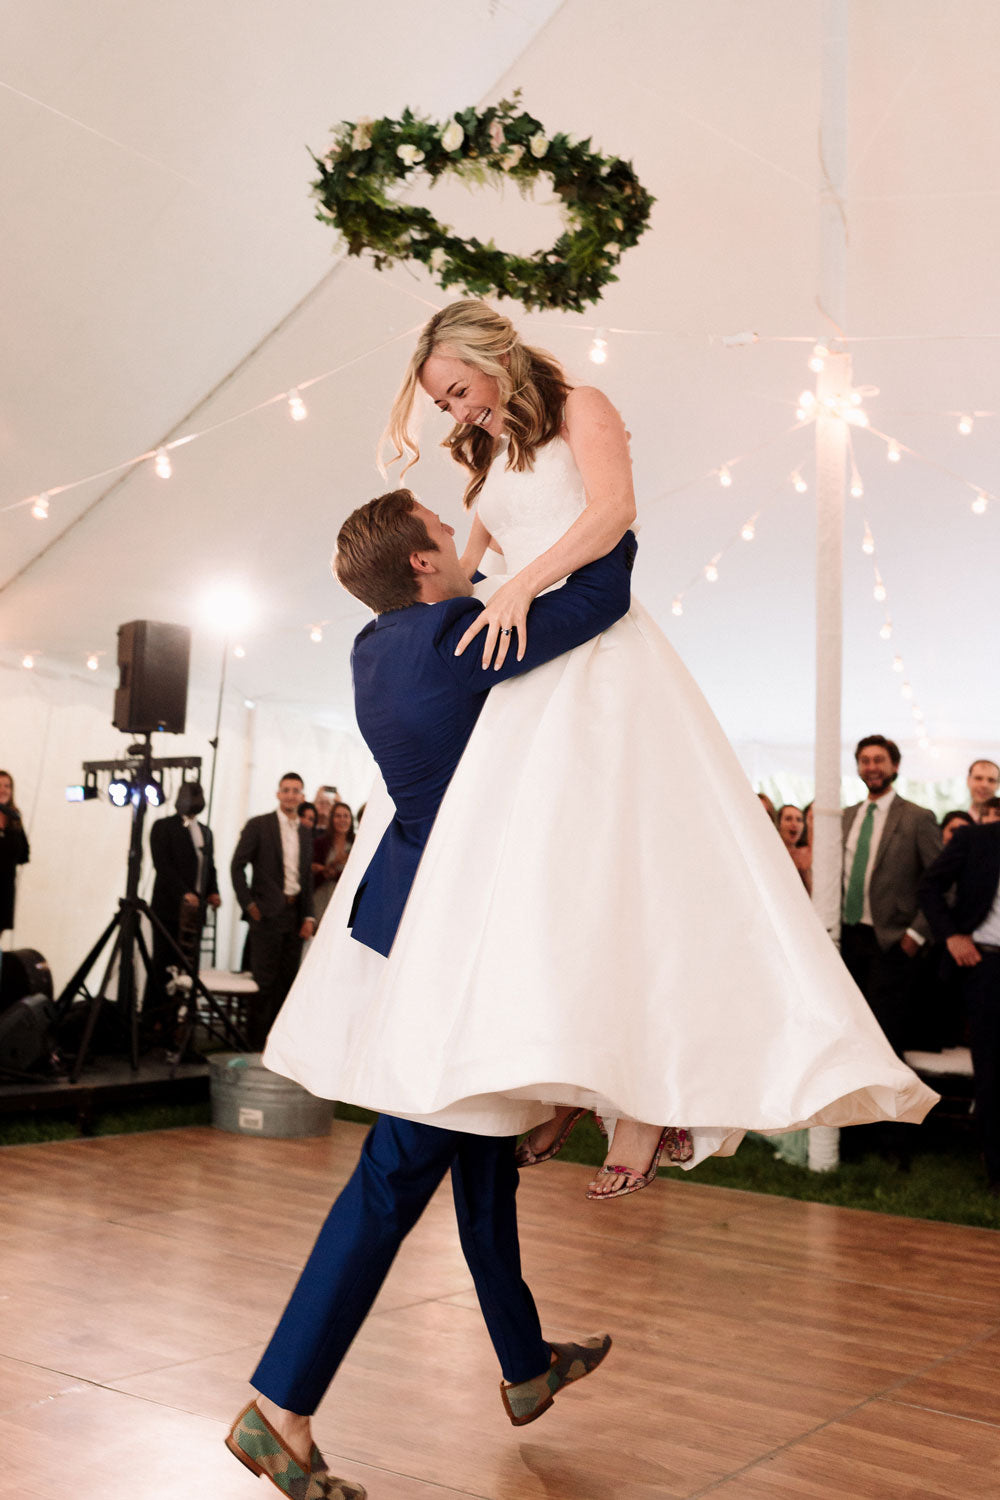 Alex Pardying wearing kilim shoes is lifting up Christina, his new wife, on dance floor at their wedding.